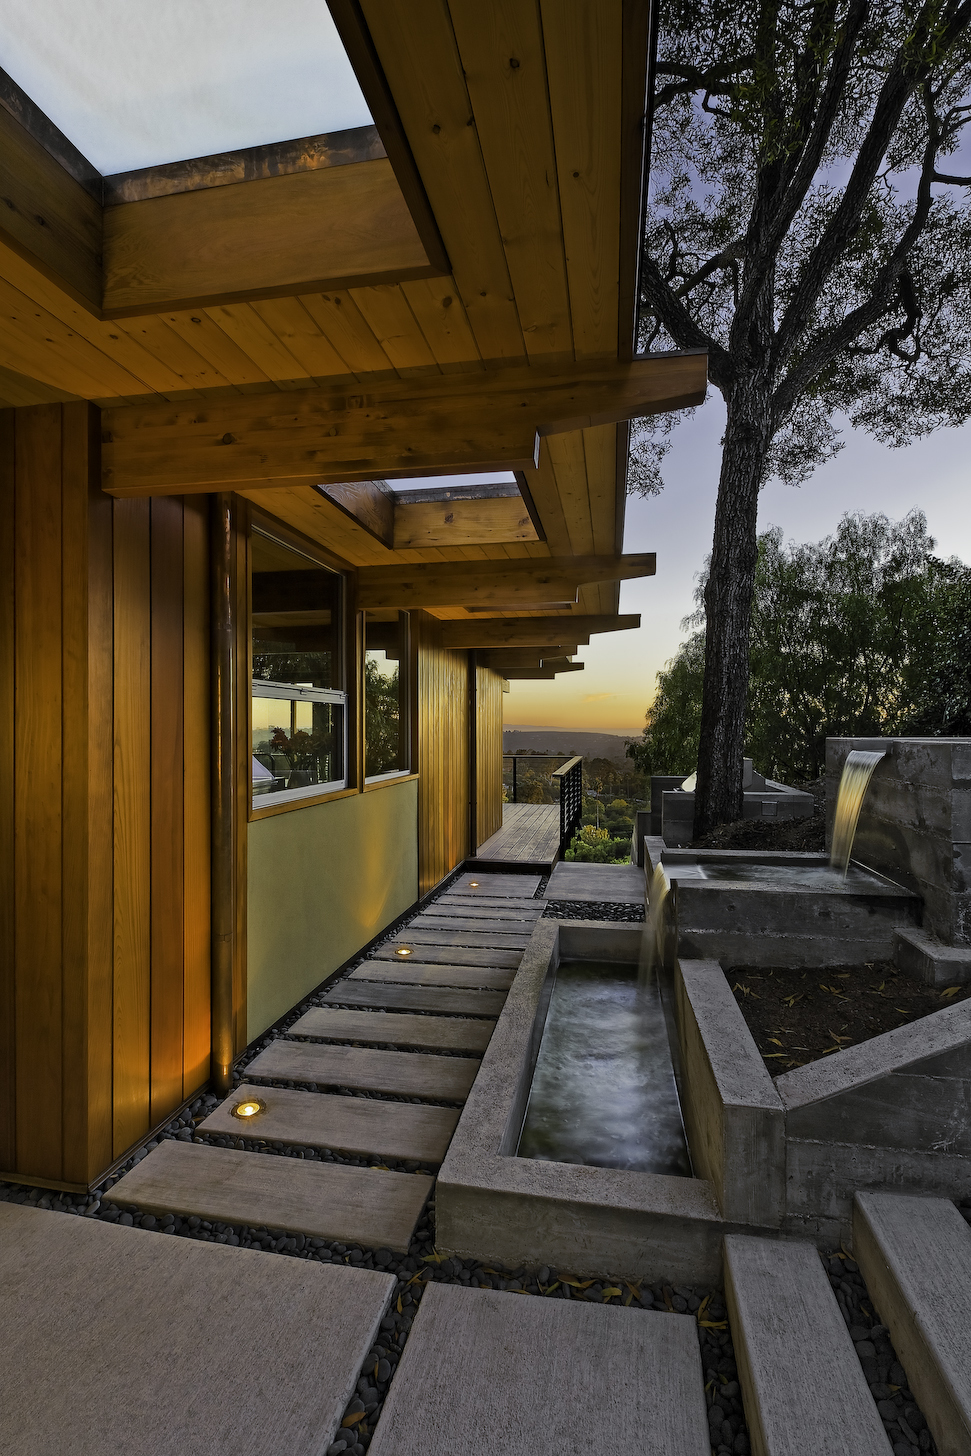 1950's mid century modern hillside home. full restoration | addition | modernization. board formed concrete | clear wood finishes | mid-mod style.